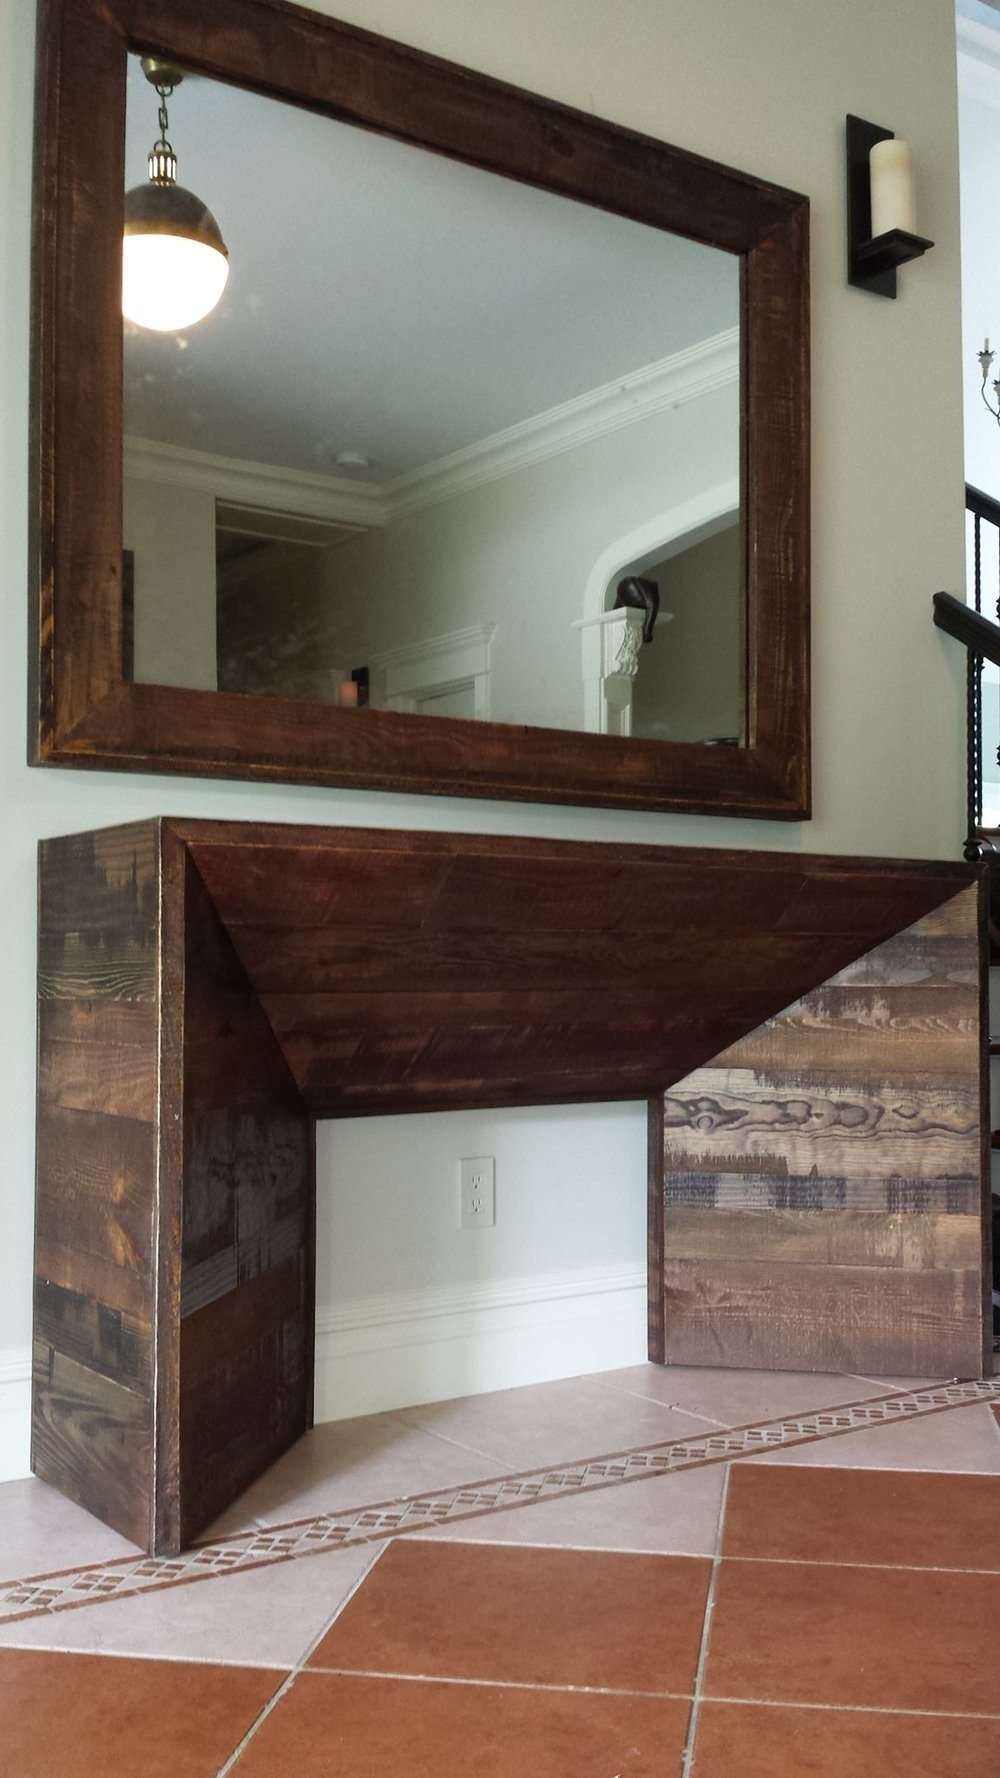 Reclaimed brown board entrance table and mirror.